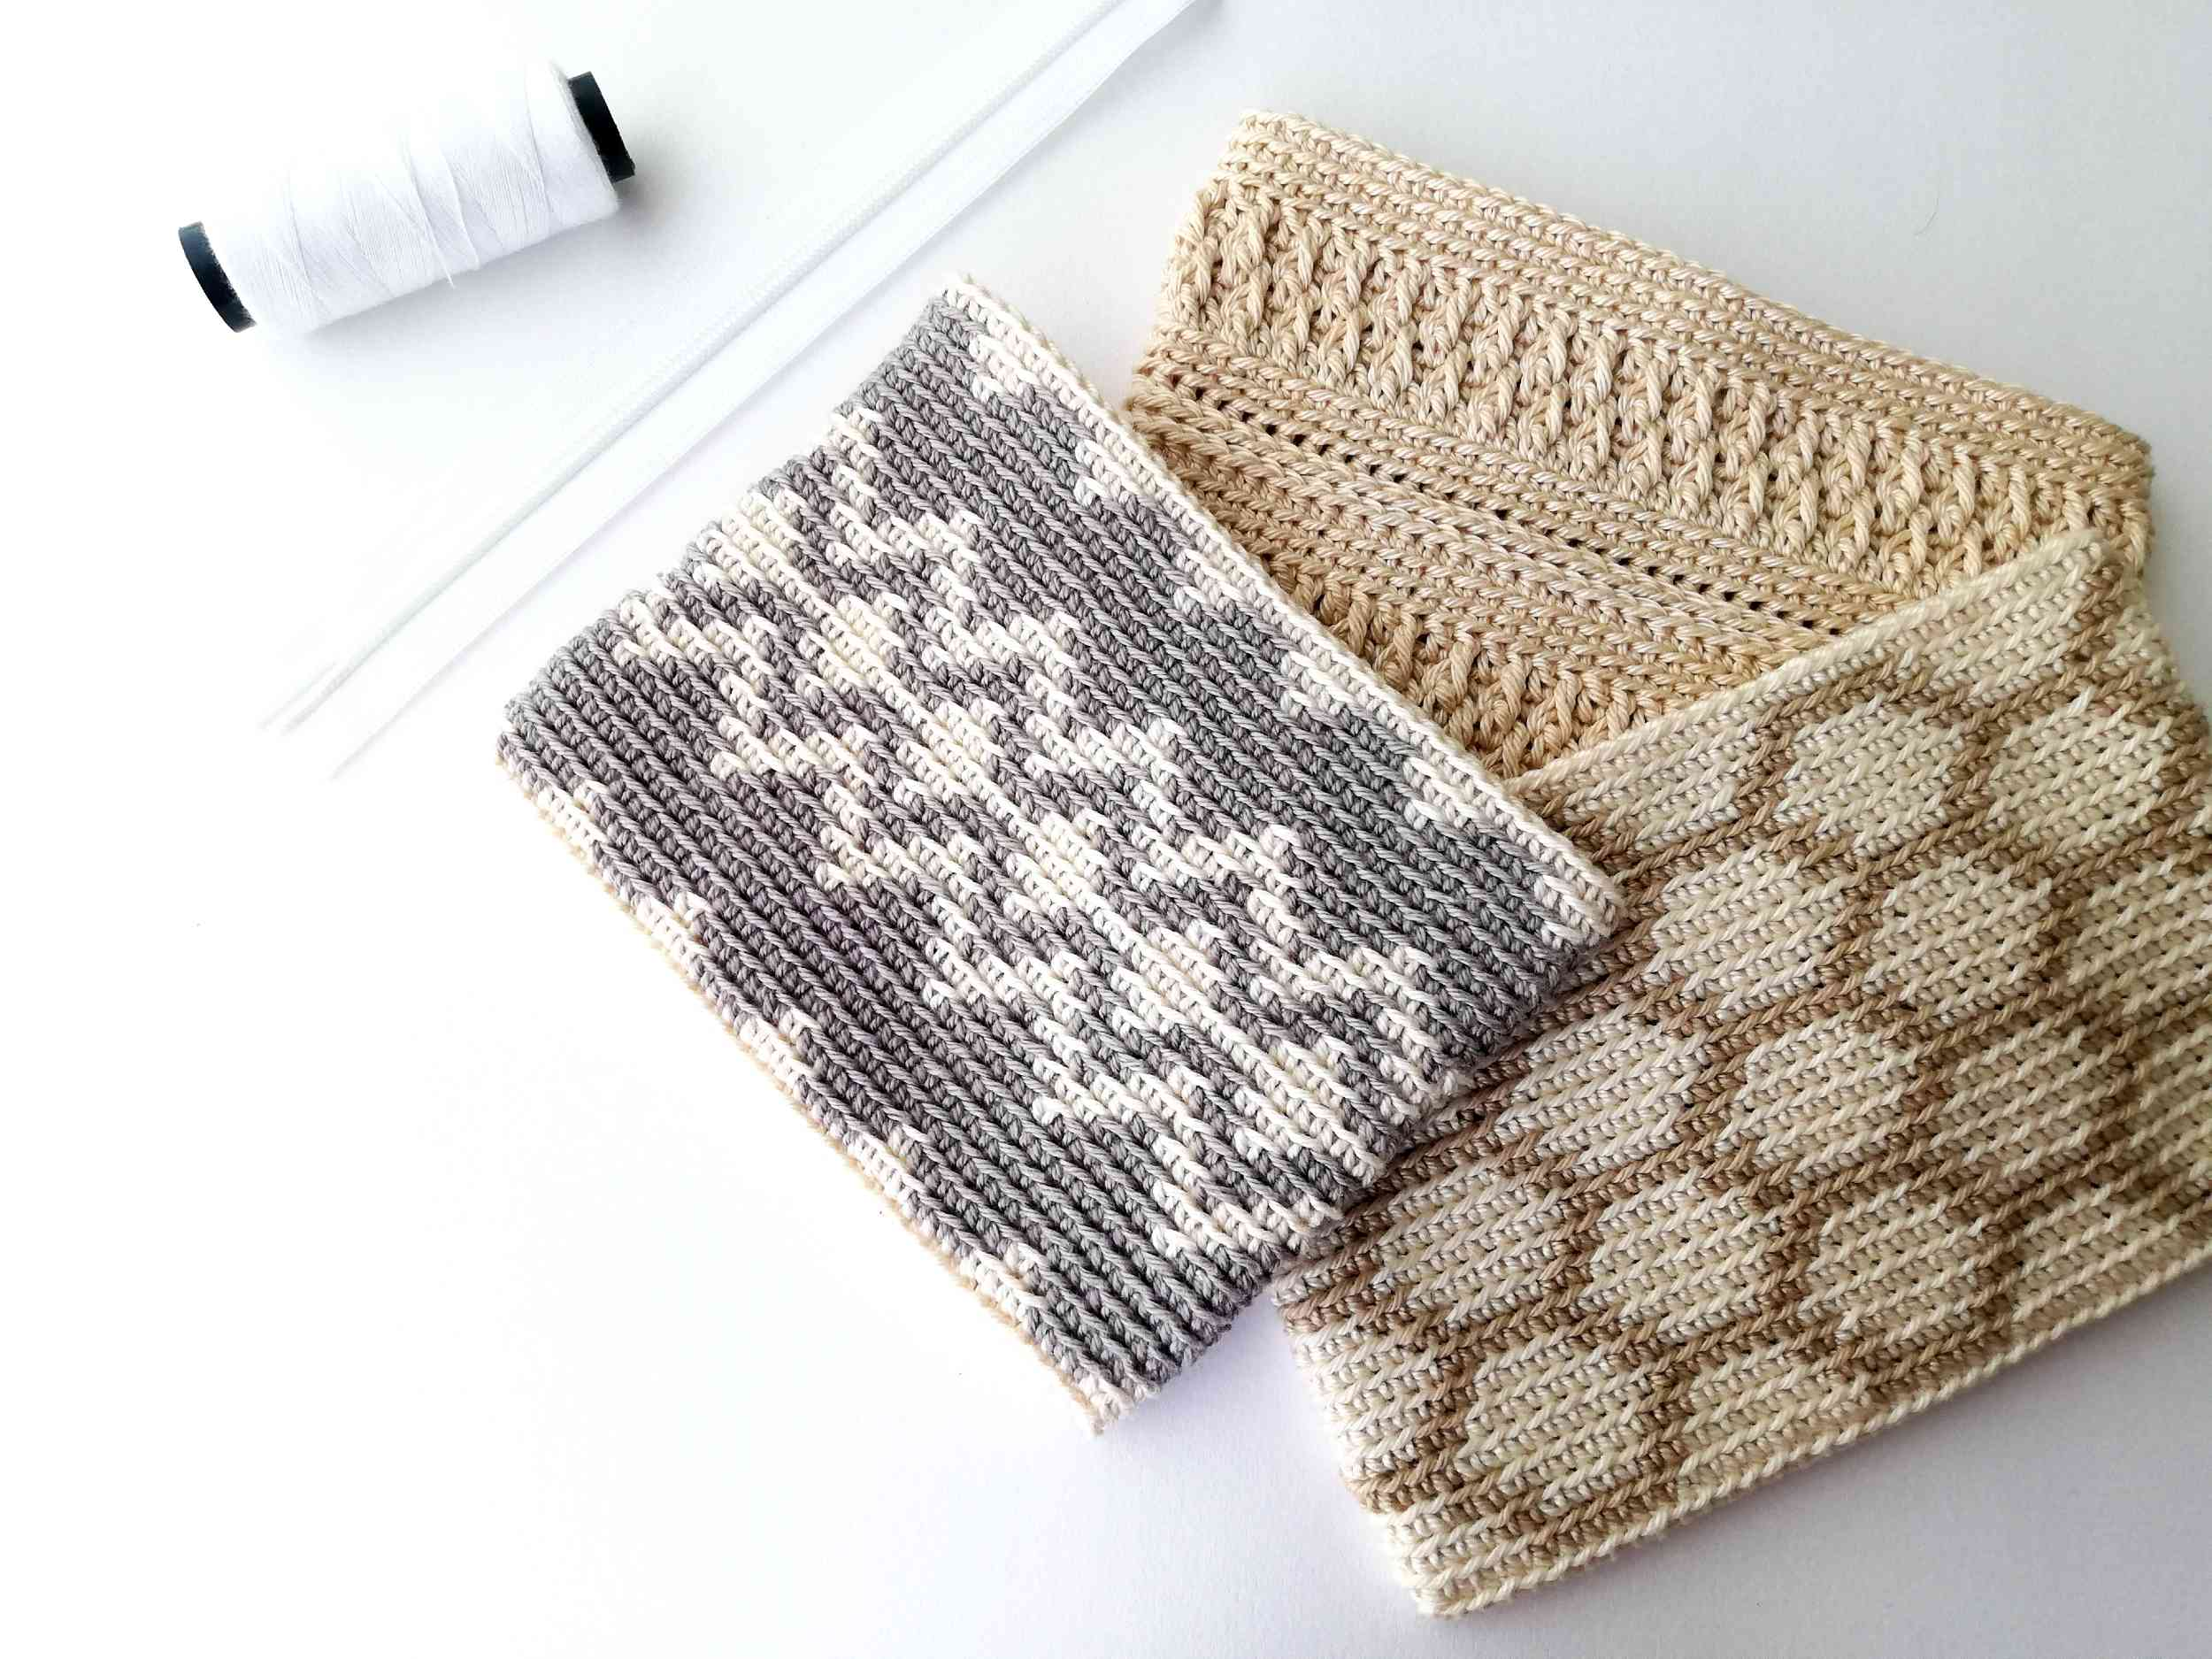 How to sew in a zipper in a crochet pouch and attach lining - Nordic Hook